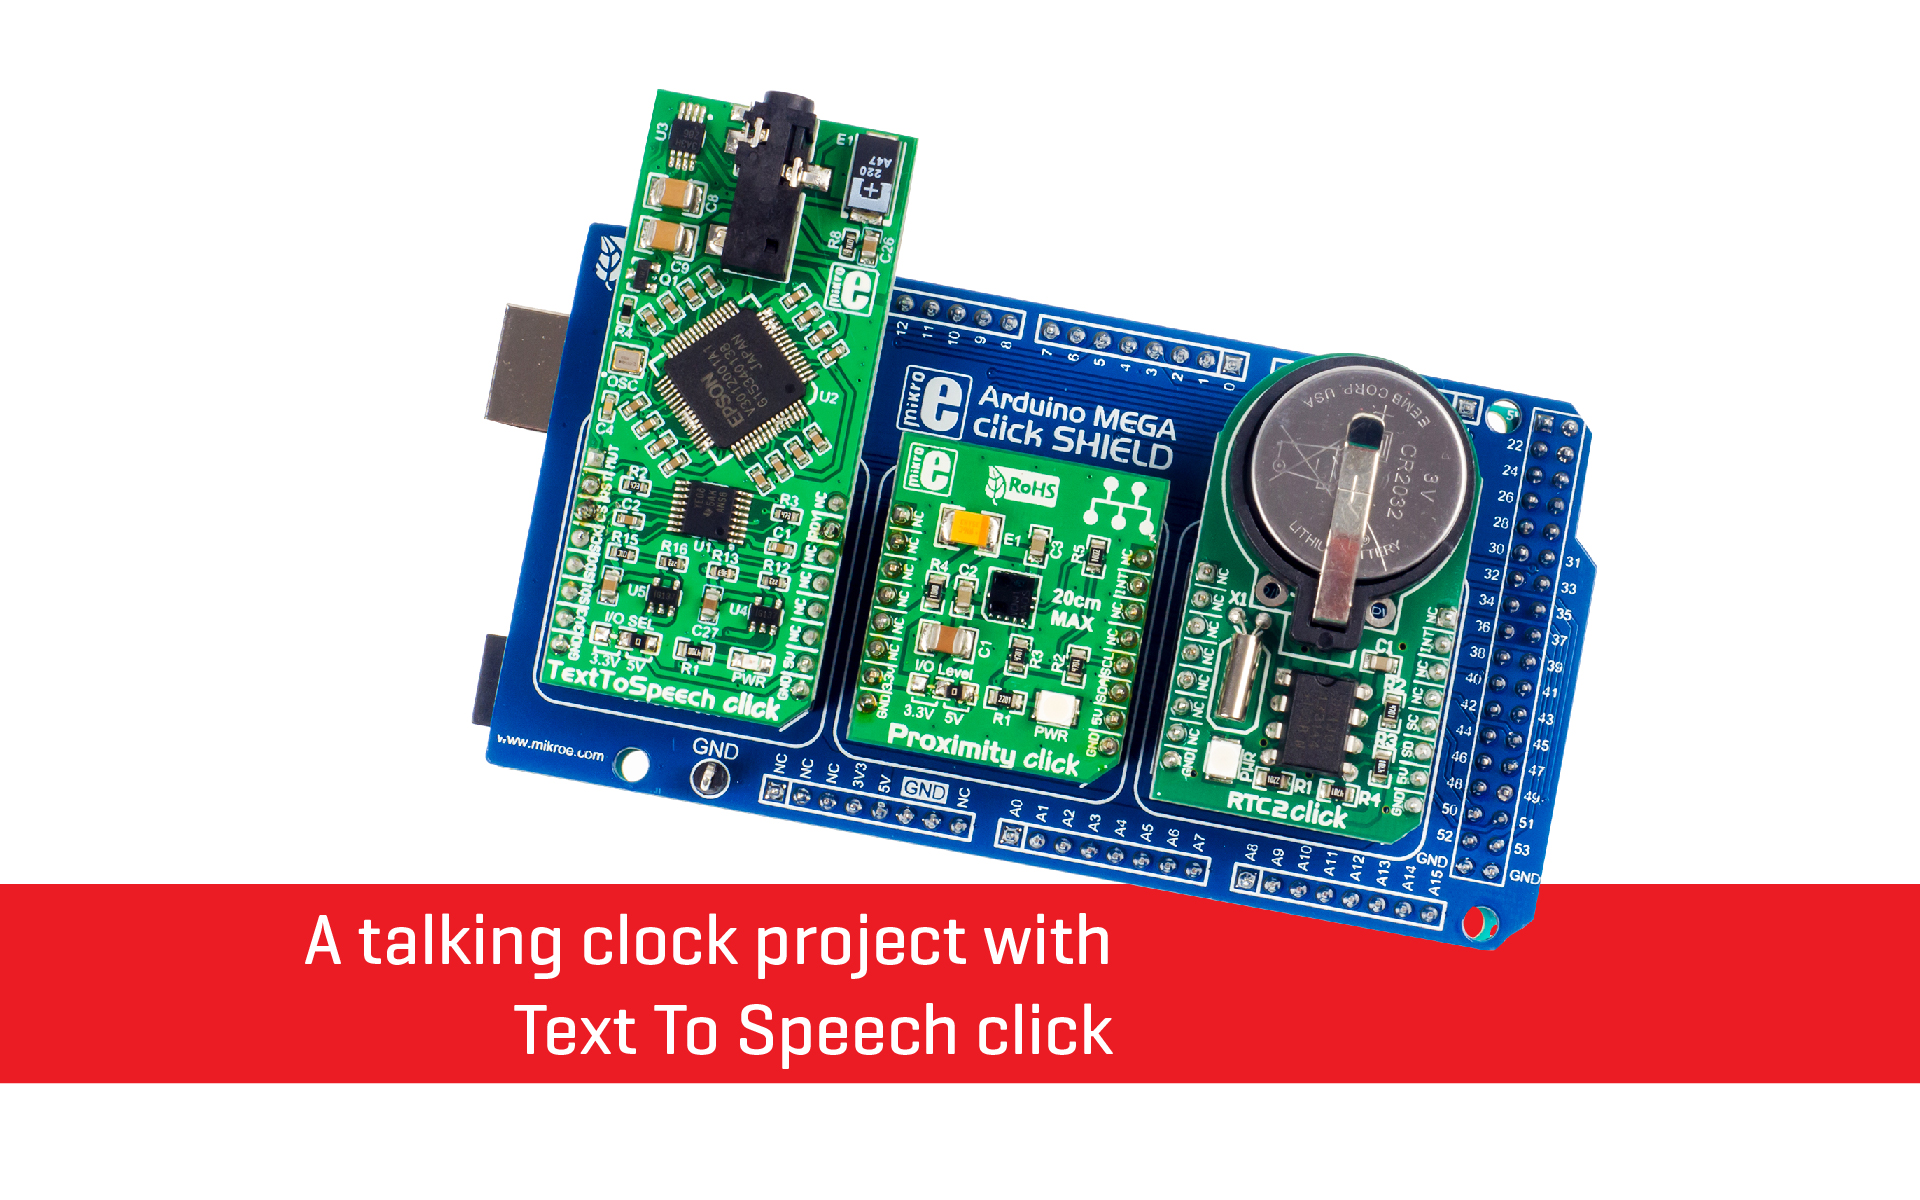 A talking clock project with Text To Speech click